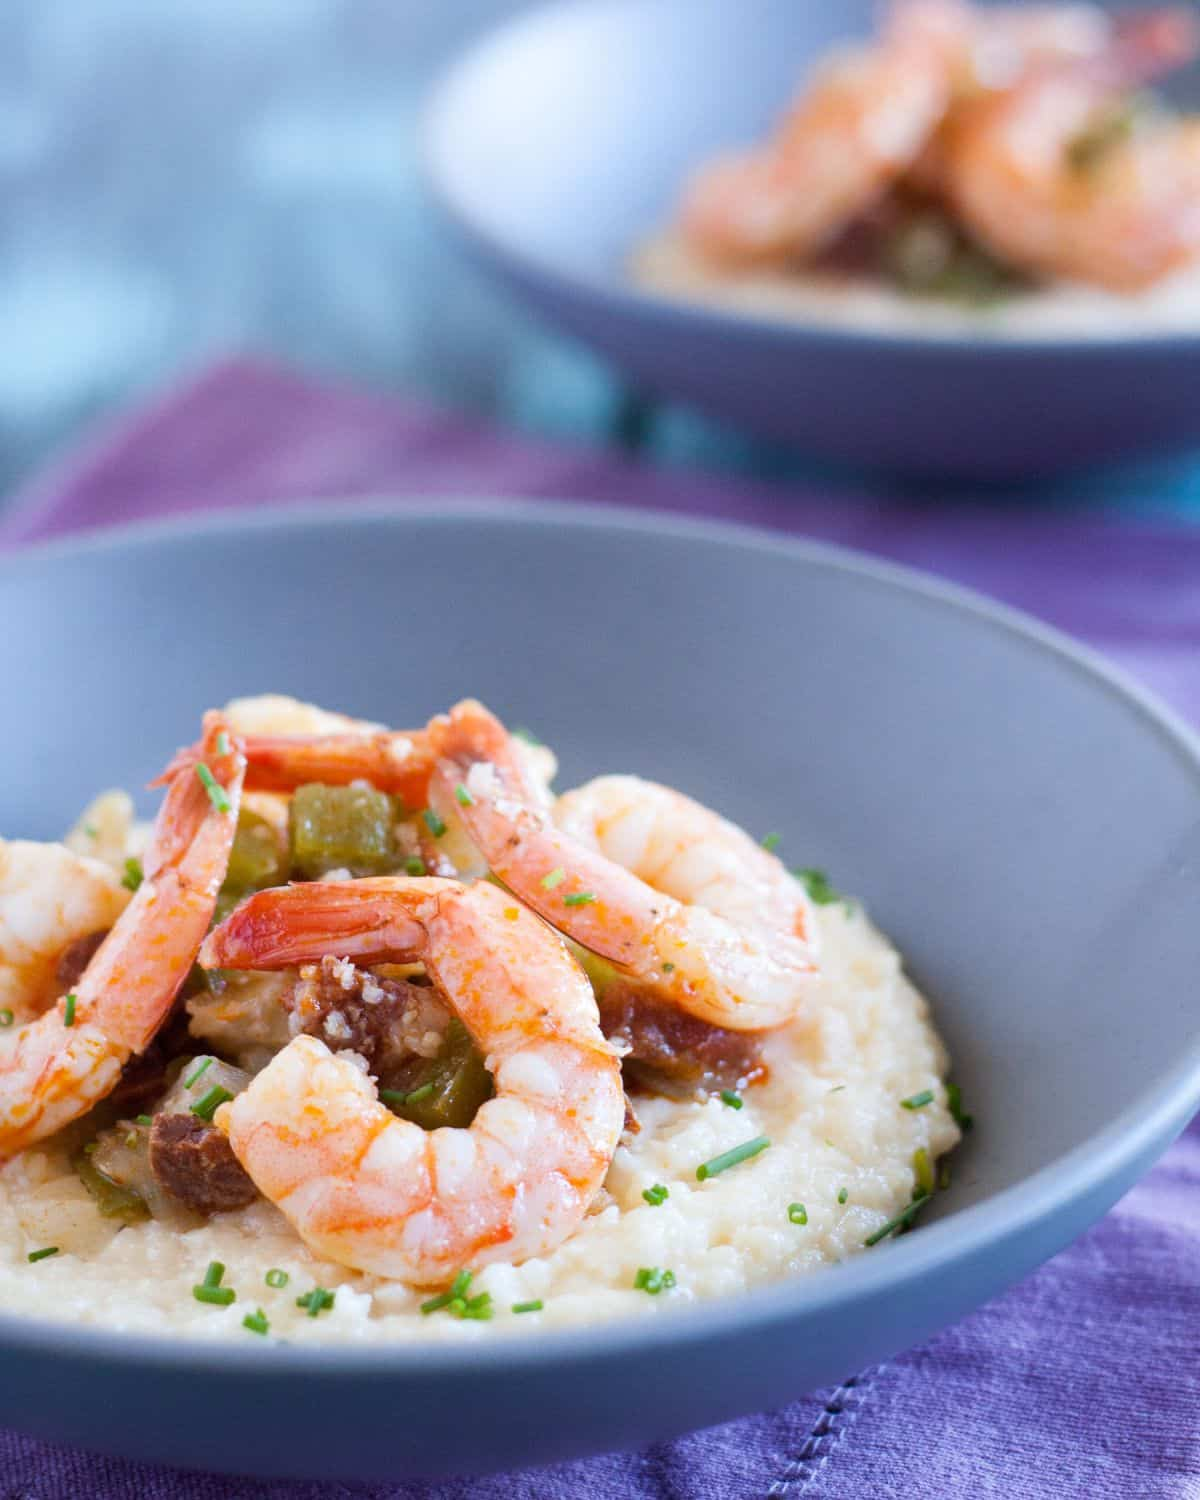 Shrimp and Grits is the perfect Southern comfort food. So delicious and easy to make at home from scratch! Get the recipe on GoodieGodmother.com